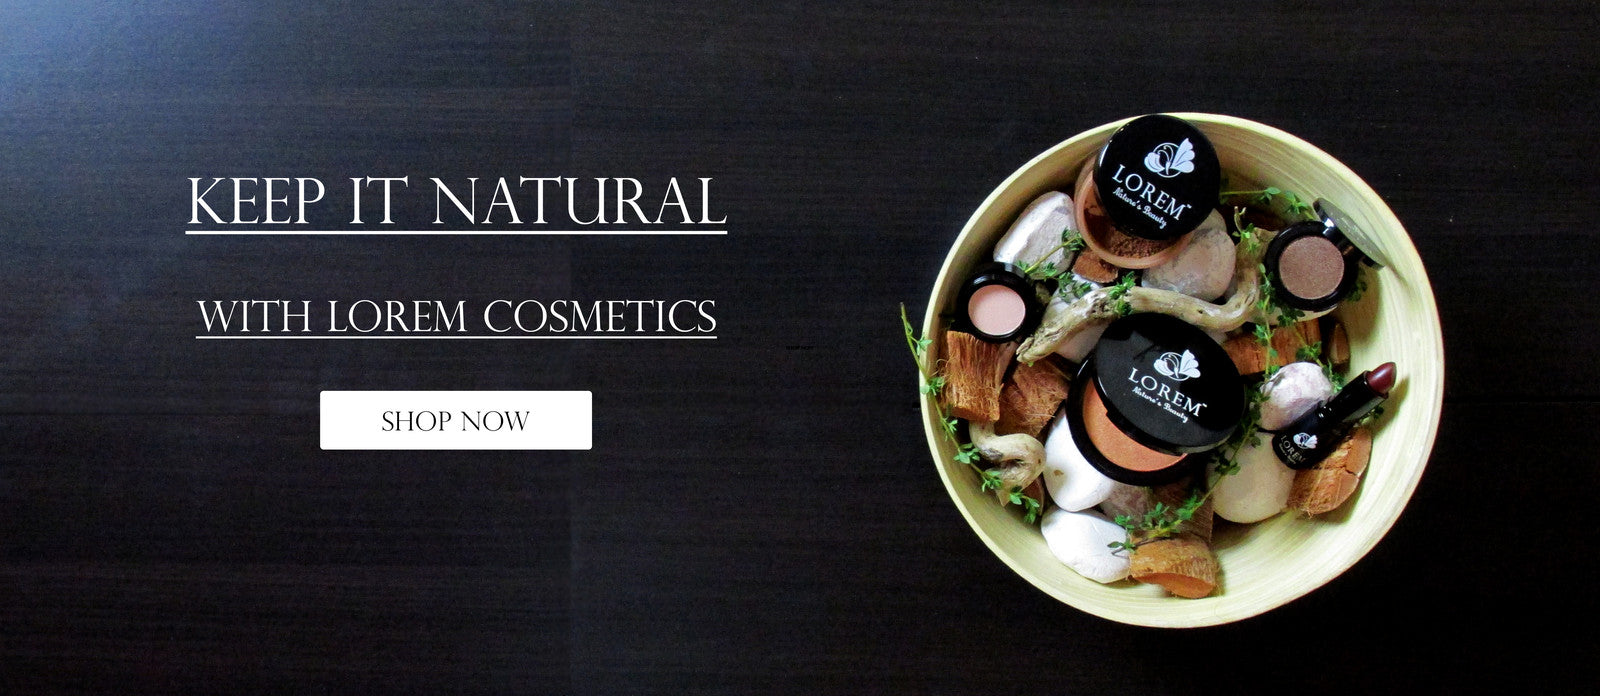 All Natural Makeup and Organic Skin Care